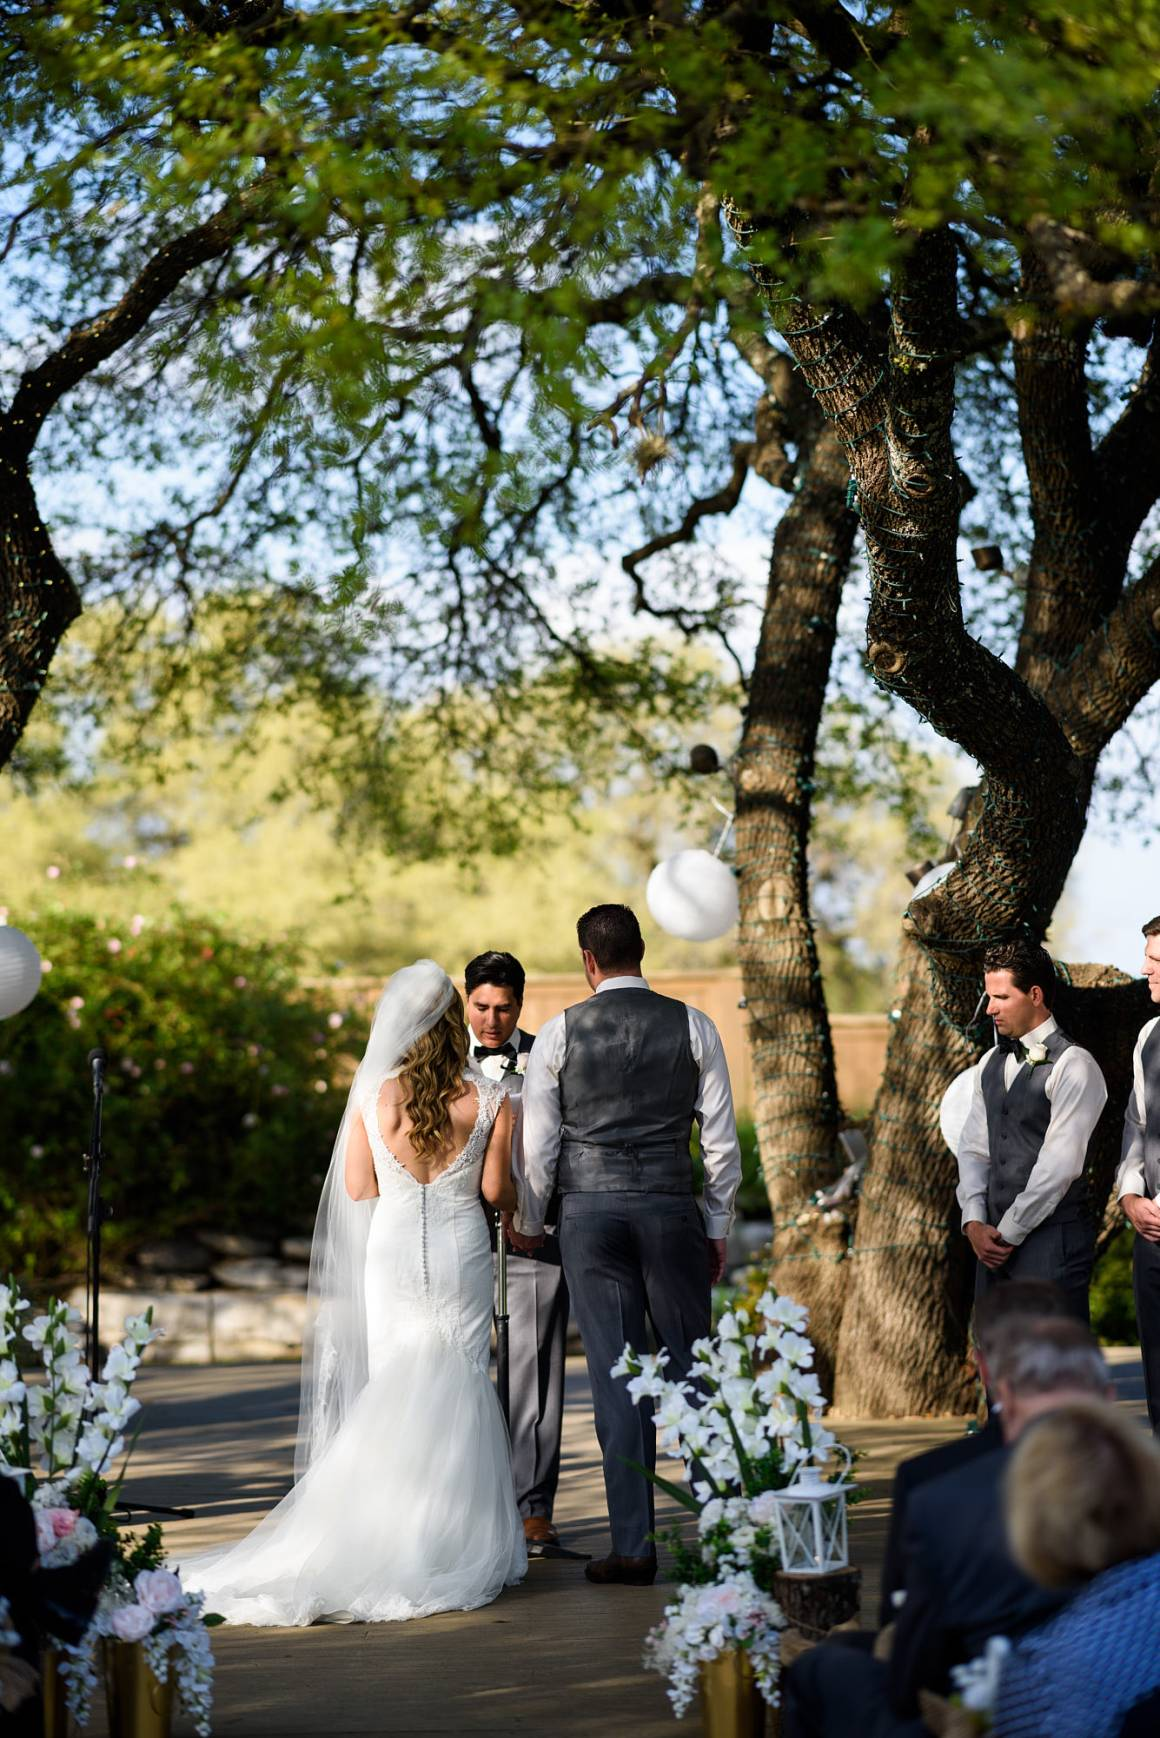 Antebellum Oaks Wedding - Austin Wedding Photographer - Jacob and Katie - hill country views, hill country wedding